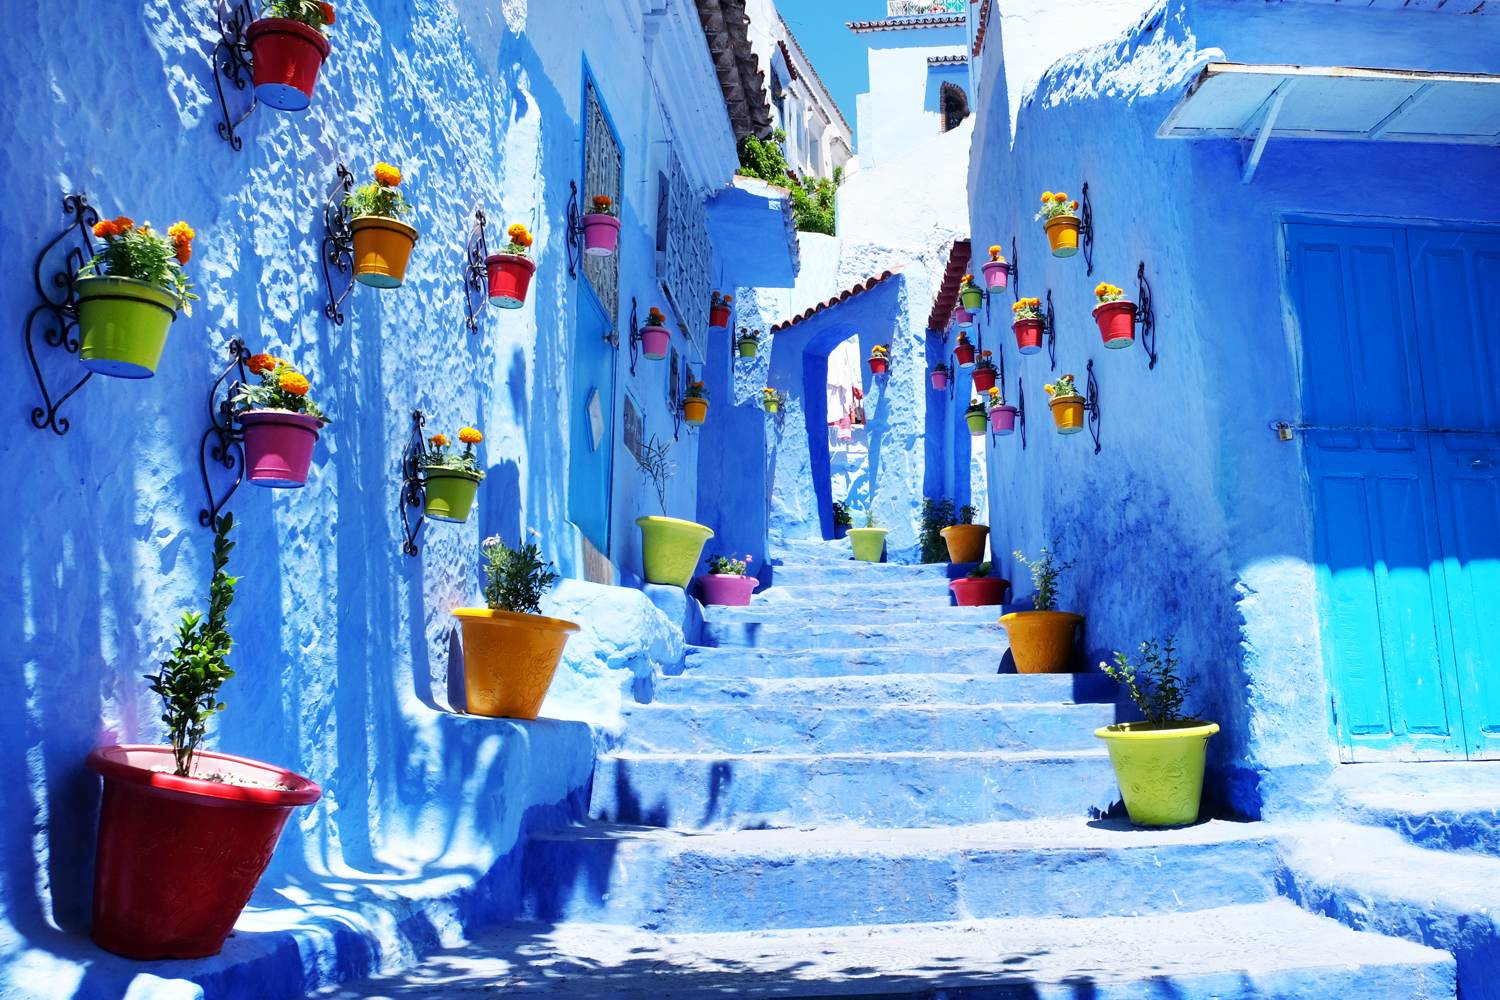 Traditionelle marokkanische Architektur in Chefchaouen